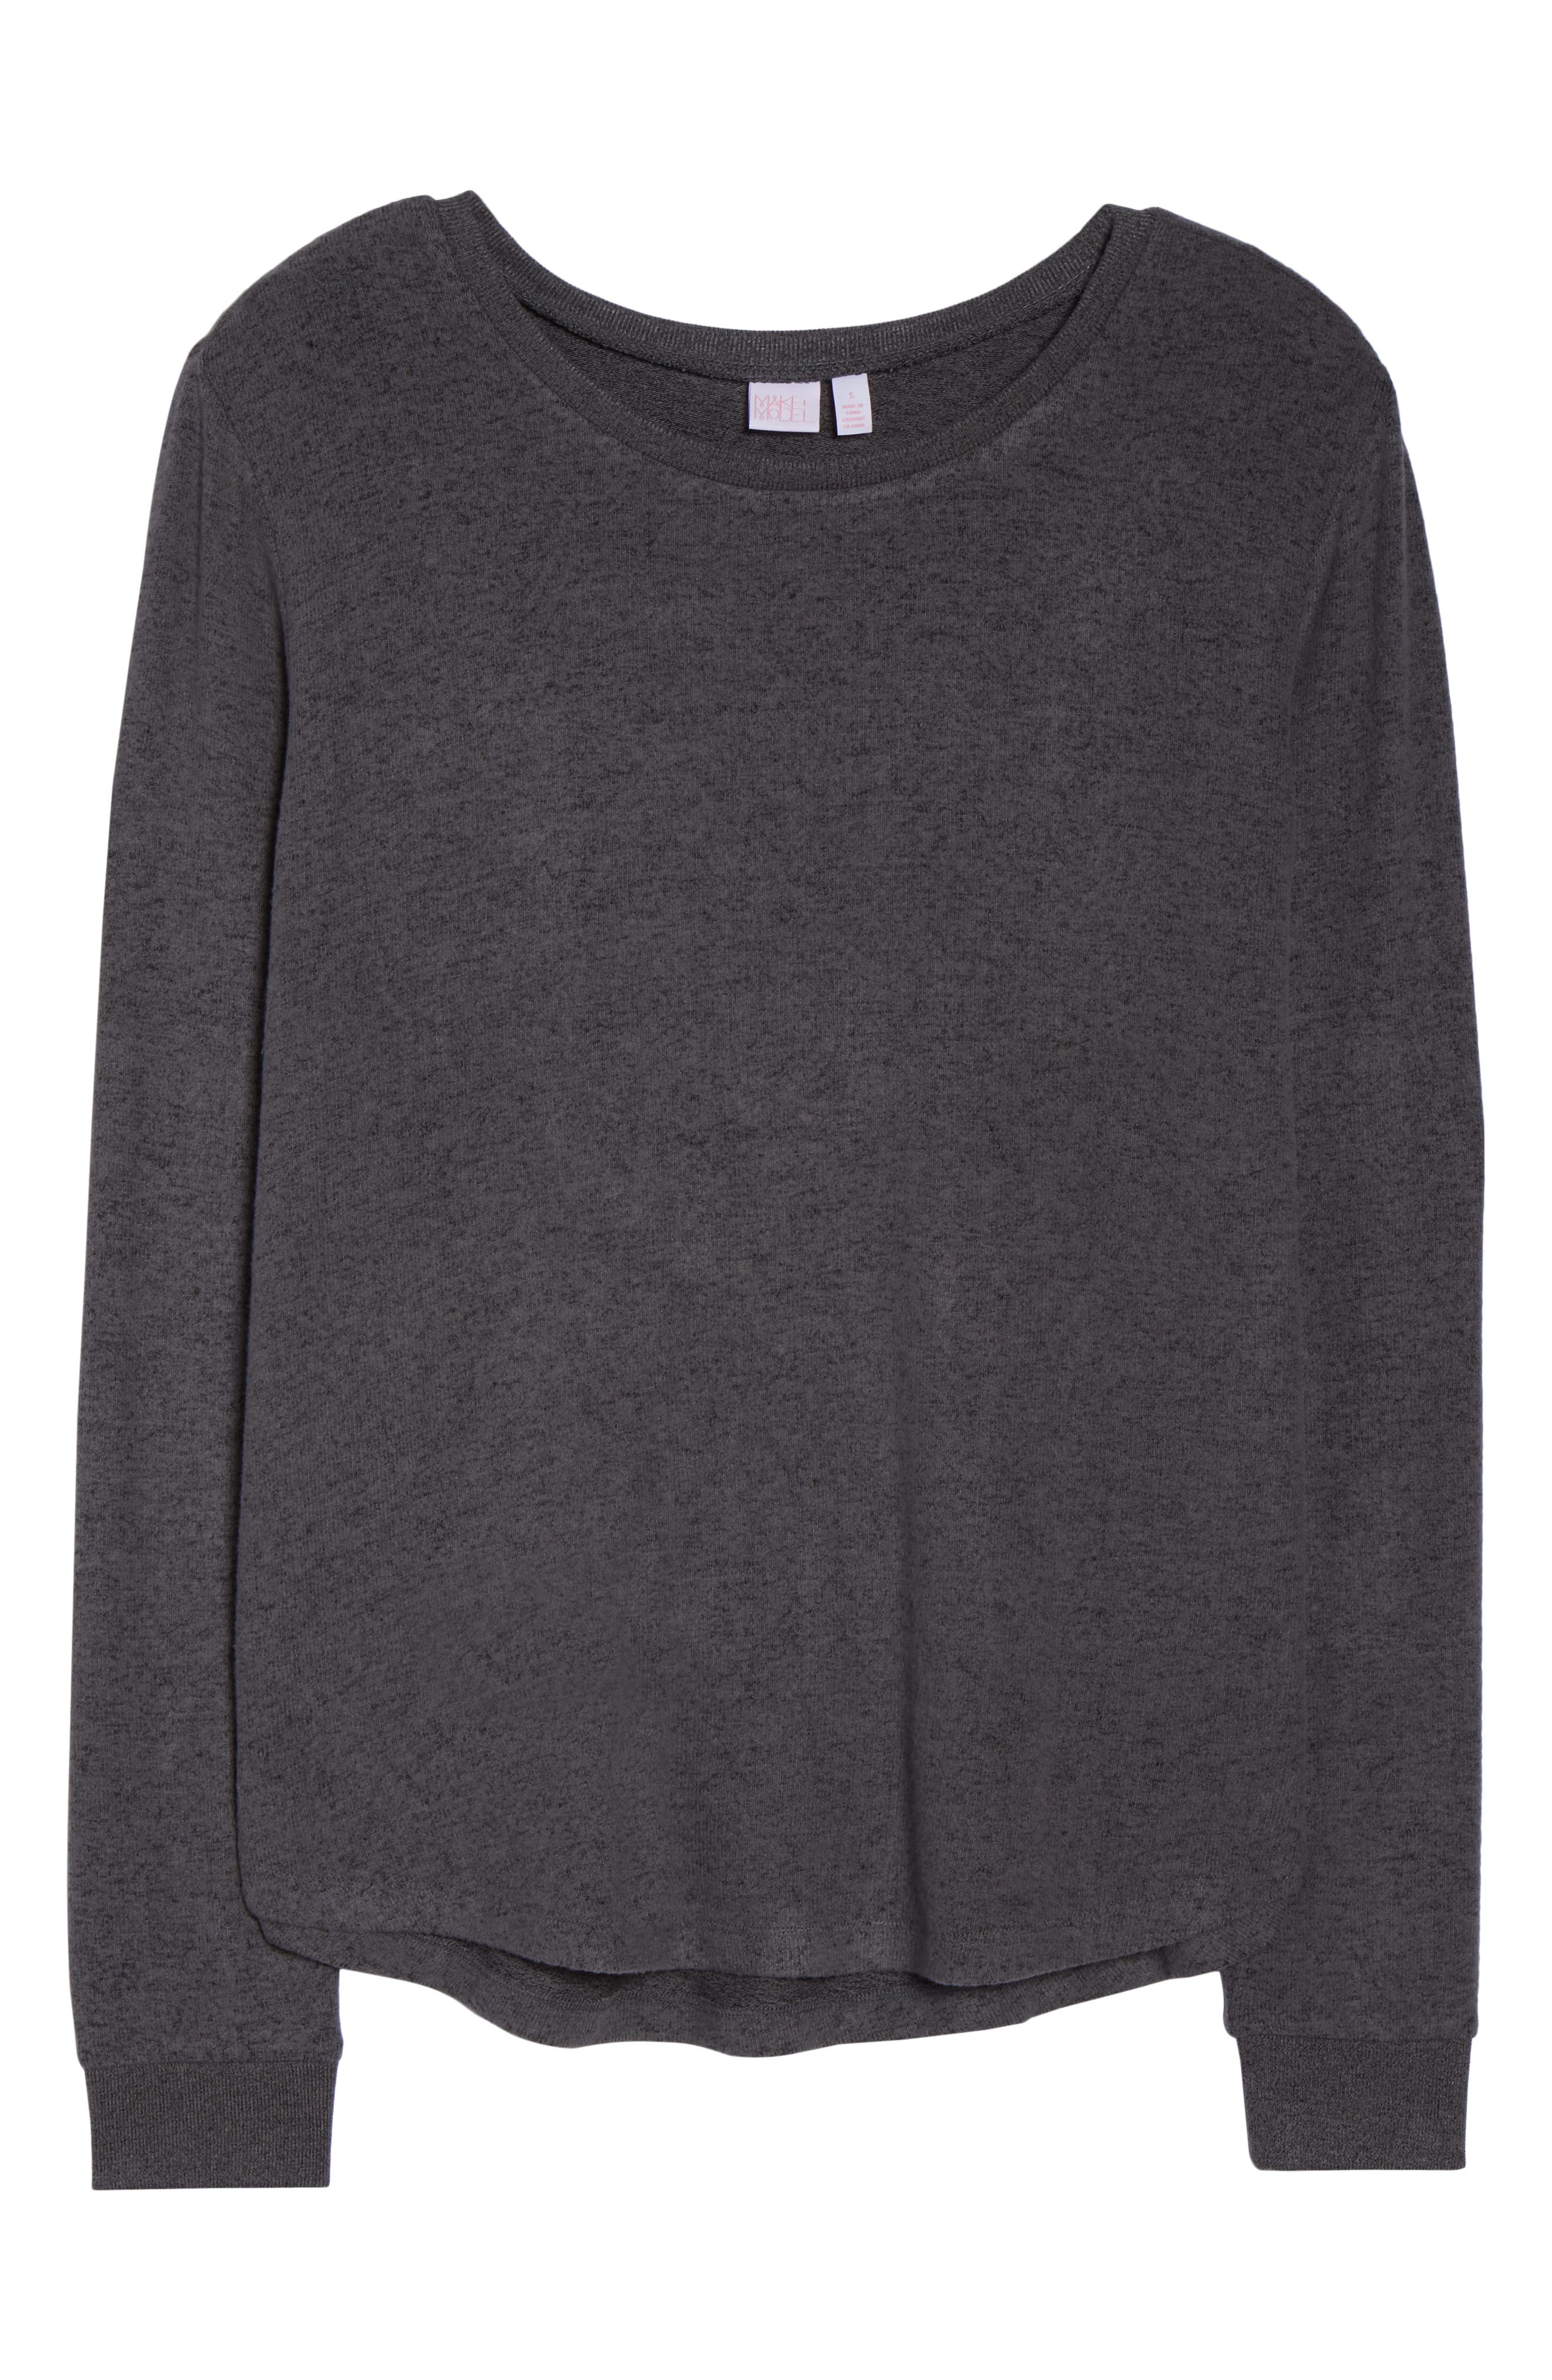 Too Cool Pullover,                             Alternate thumbnail 6, color,                             GREY PAVEMENT MARL